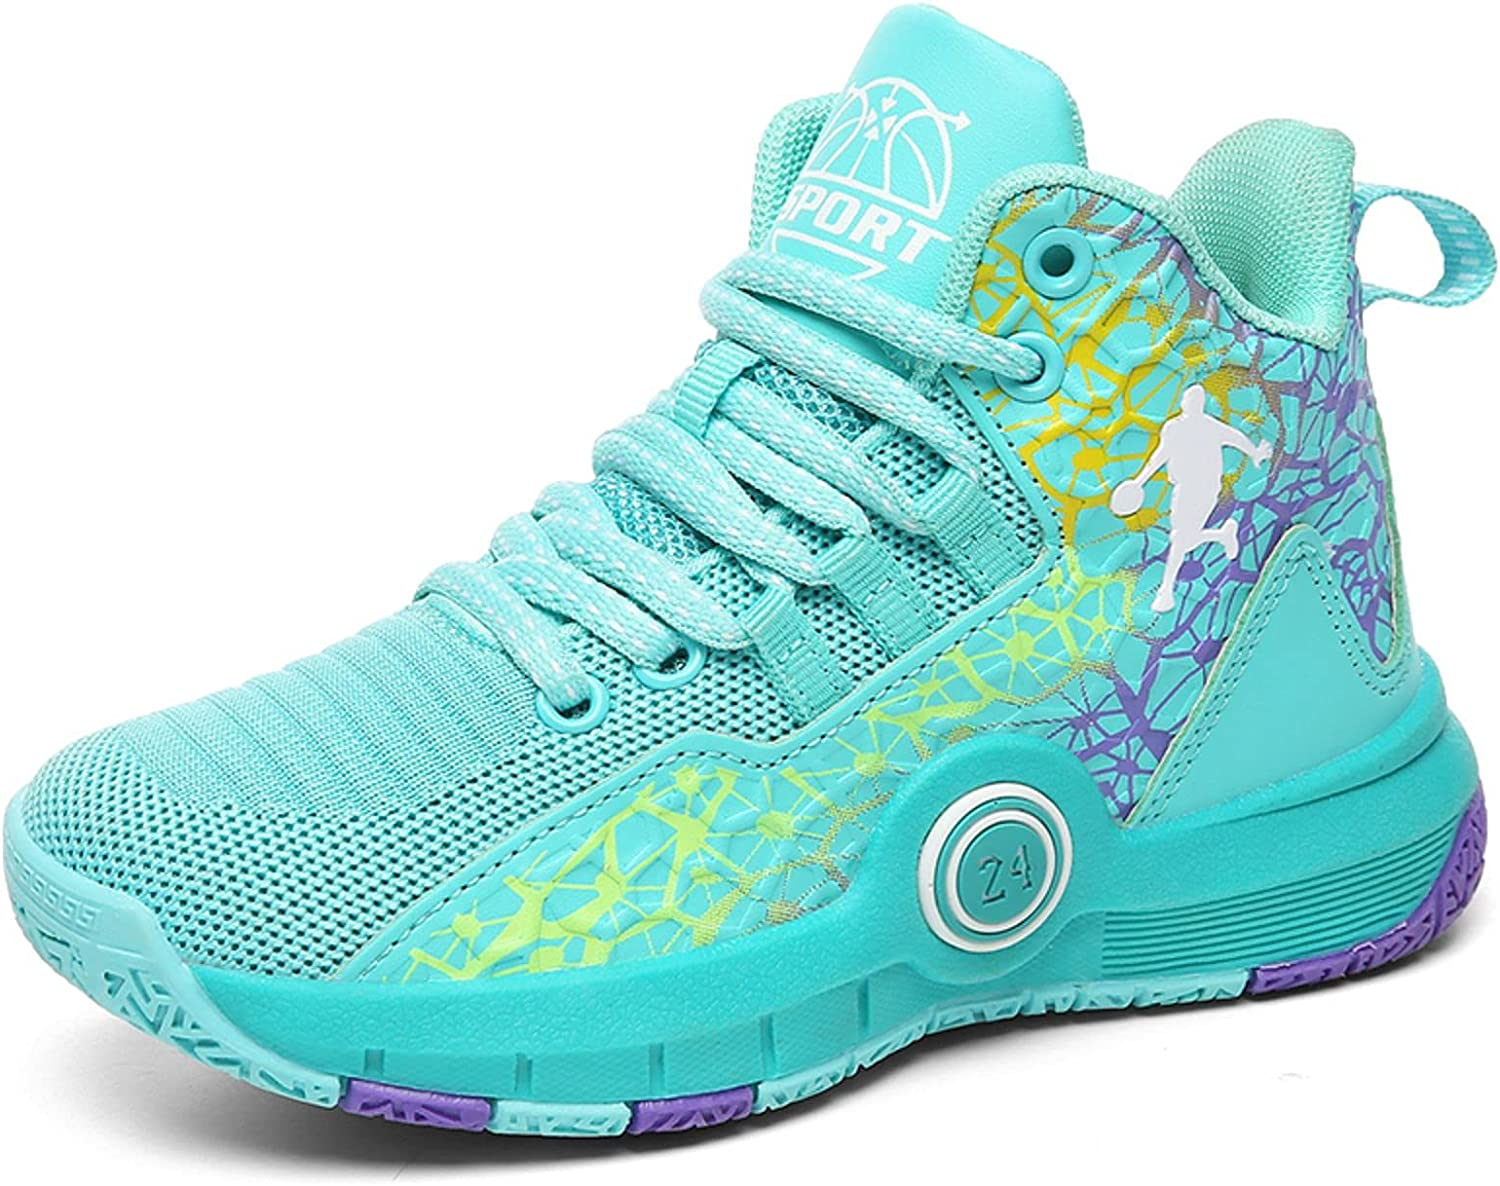 Ucilxi top Basketball Shoes